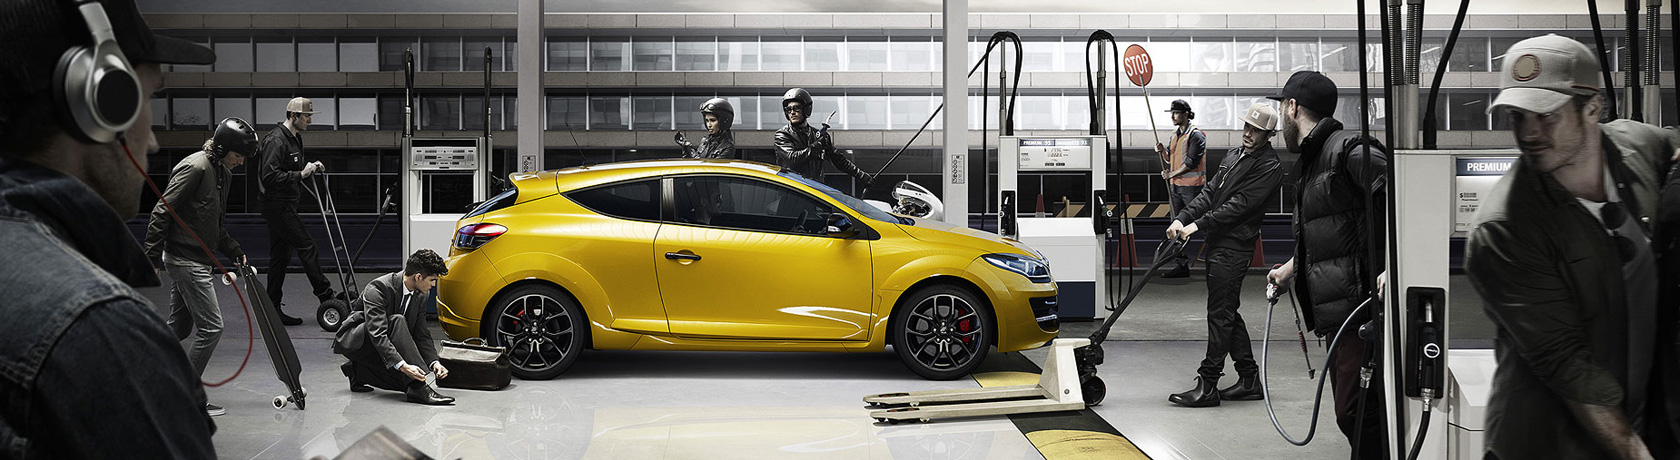 Renault Megane R.S in liquid yellow in a simulated racing pit stop.